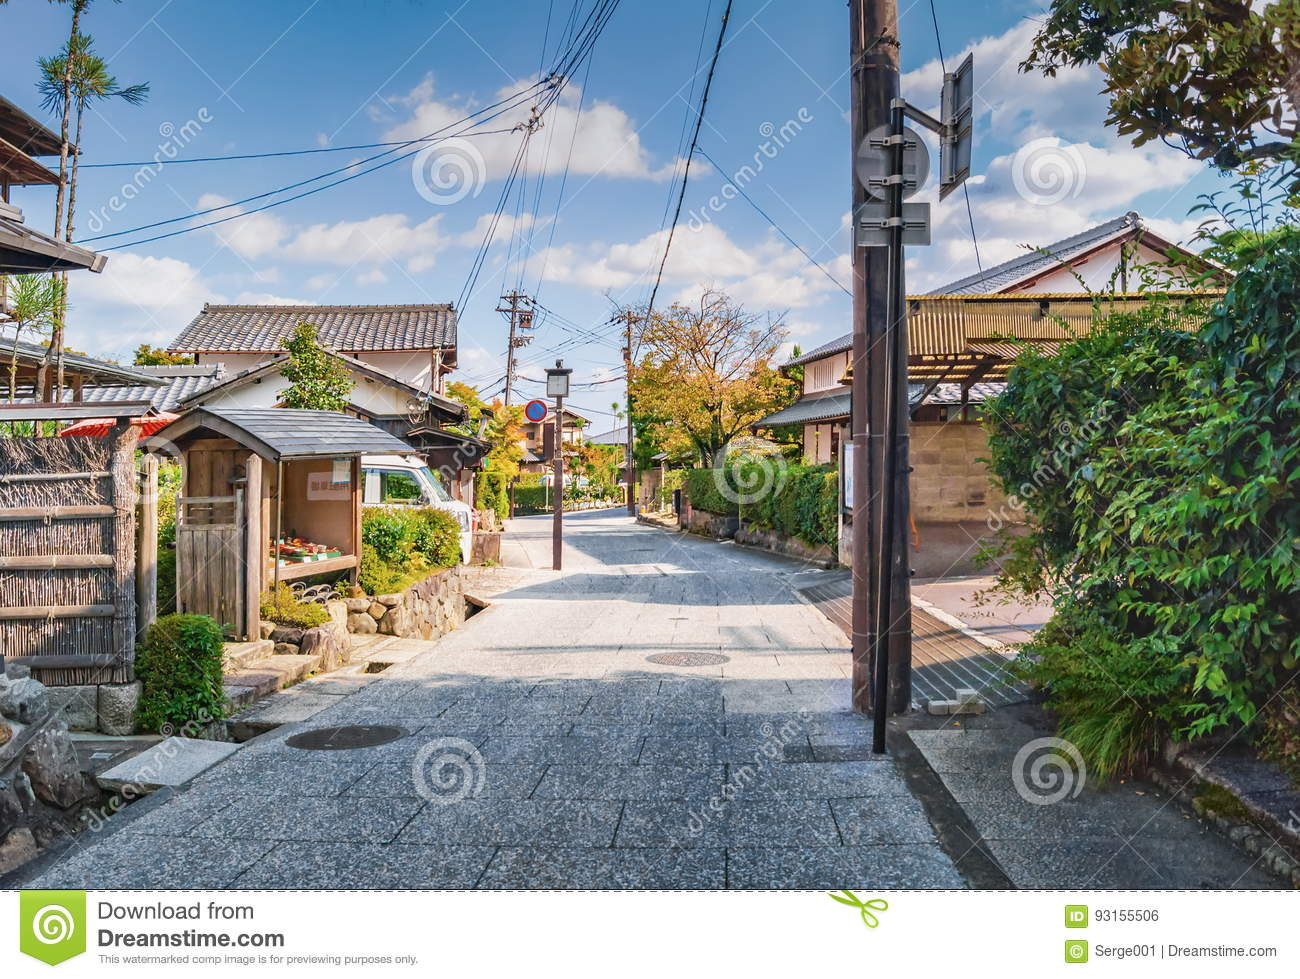 petite rue japonaise traditionnelle dans la banlieue de kyoto photo stock image du route. Black Bedroom Furniture Sets. Home Design Ideas